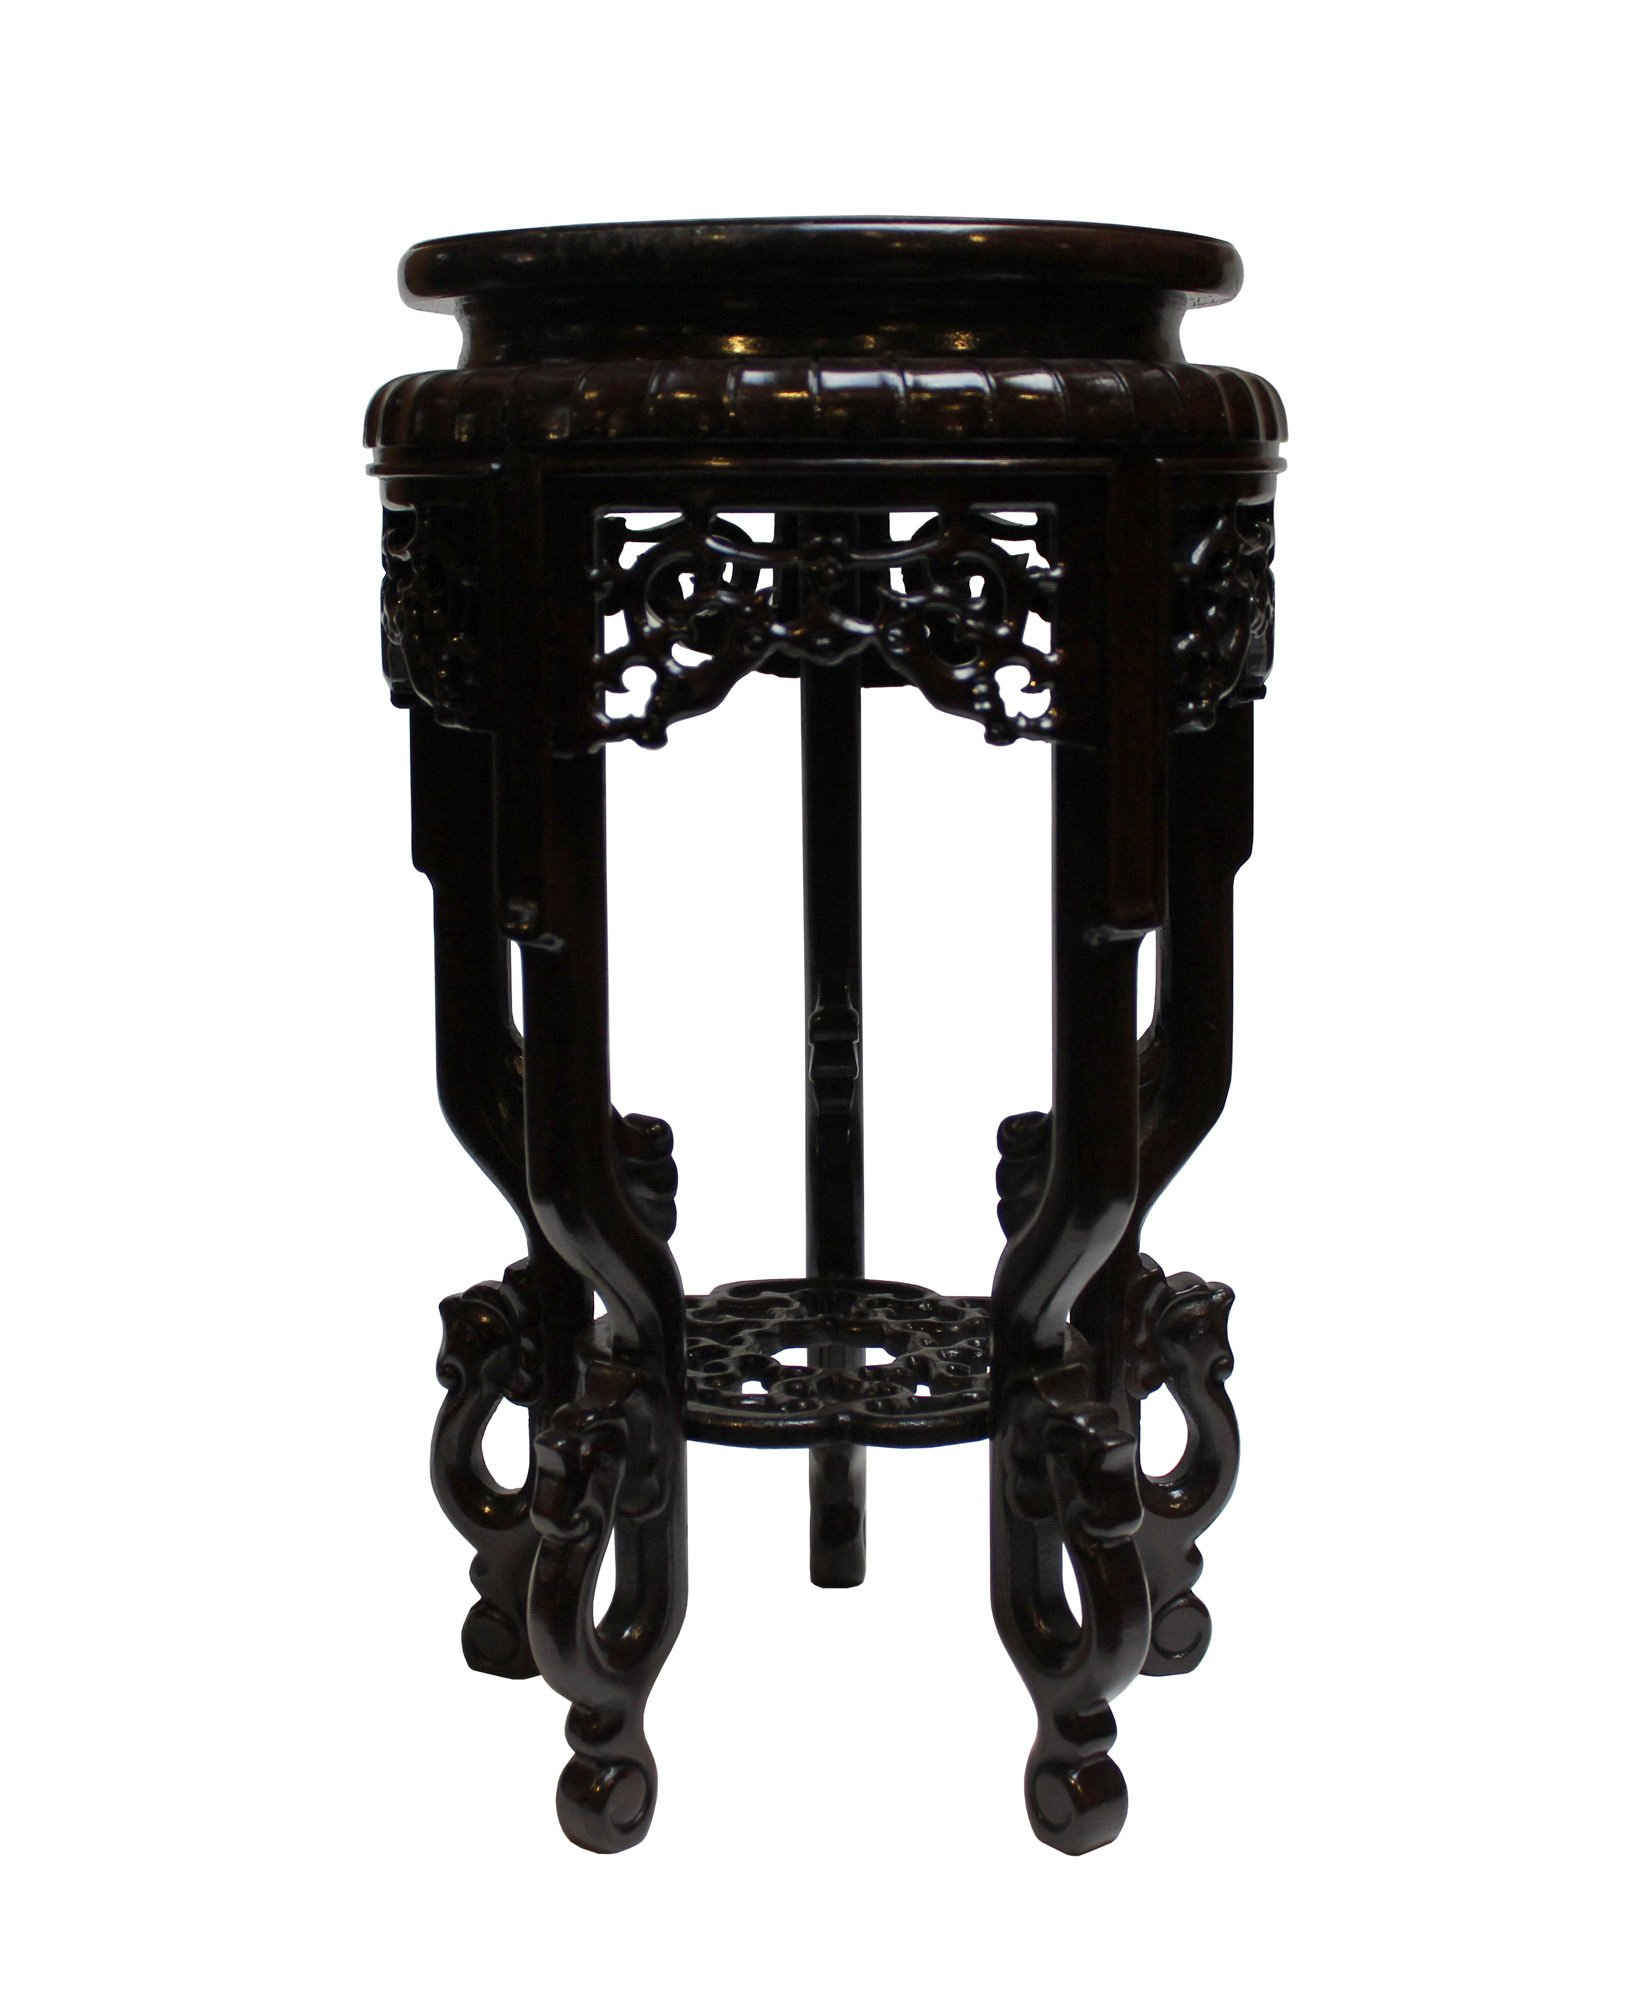 Chinese Brown Wood Round Tall Table Top Stand Display Easel Acs3711